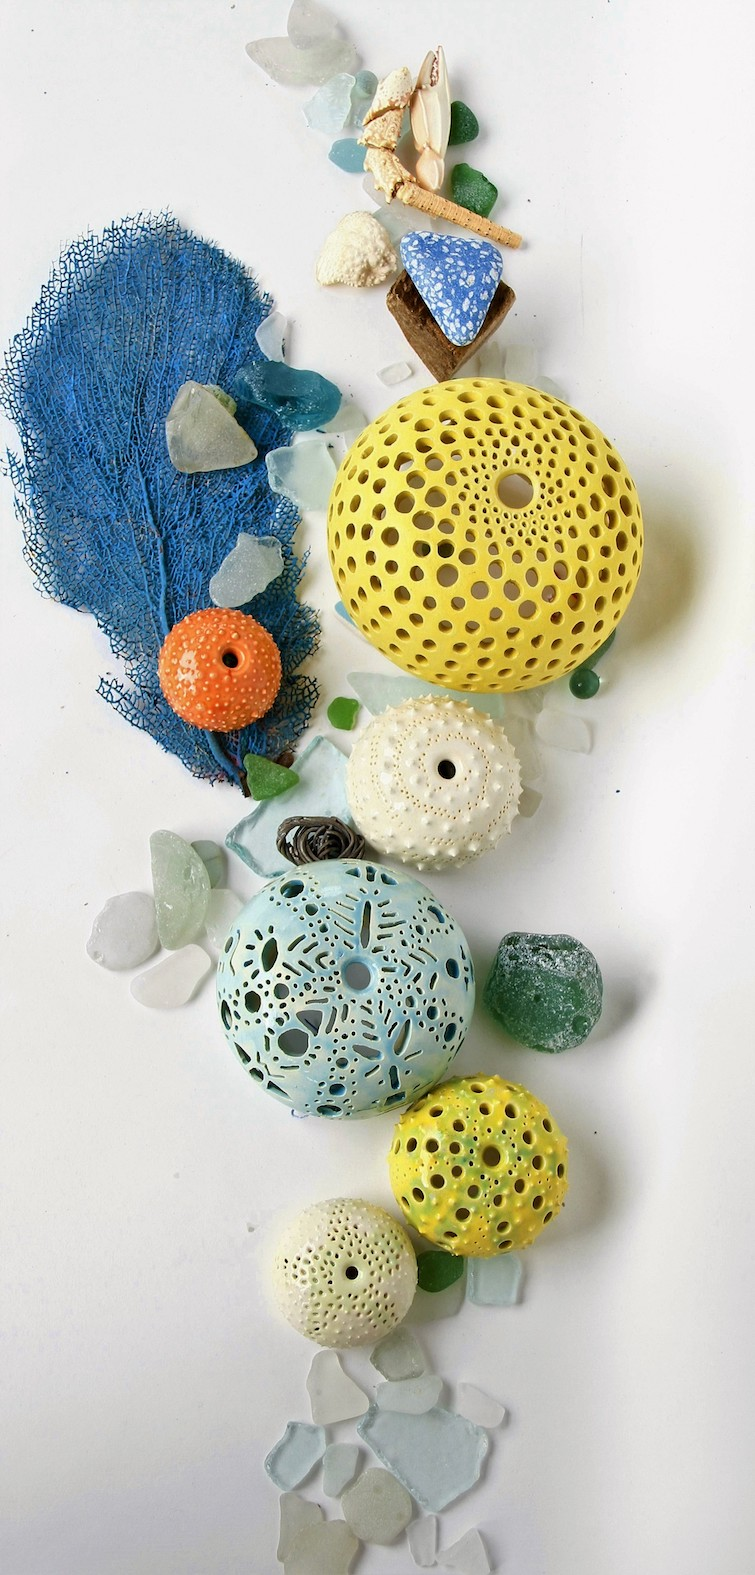 Touch By VLS: Urchin Collection_Decorative Ceramics. Photo Credit: © Touch By VLS.